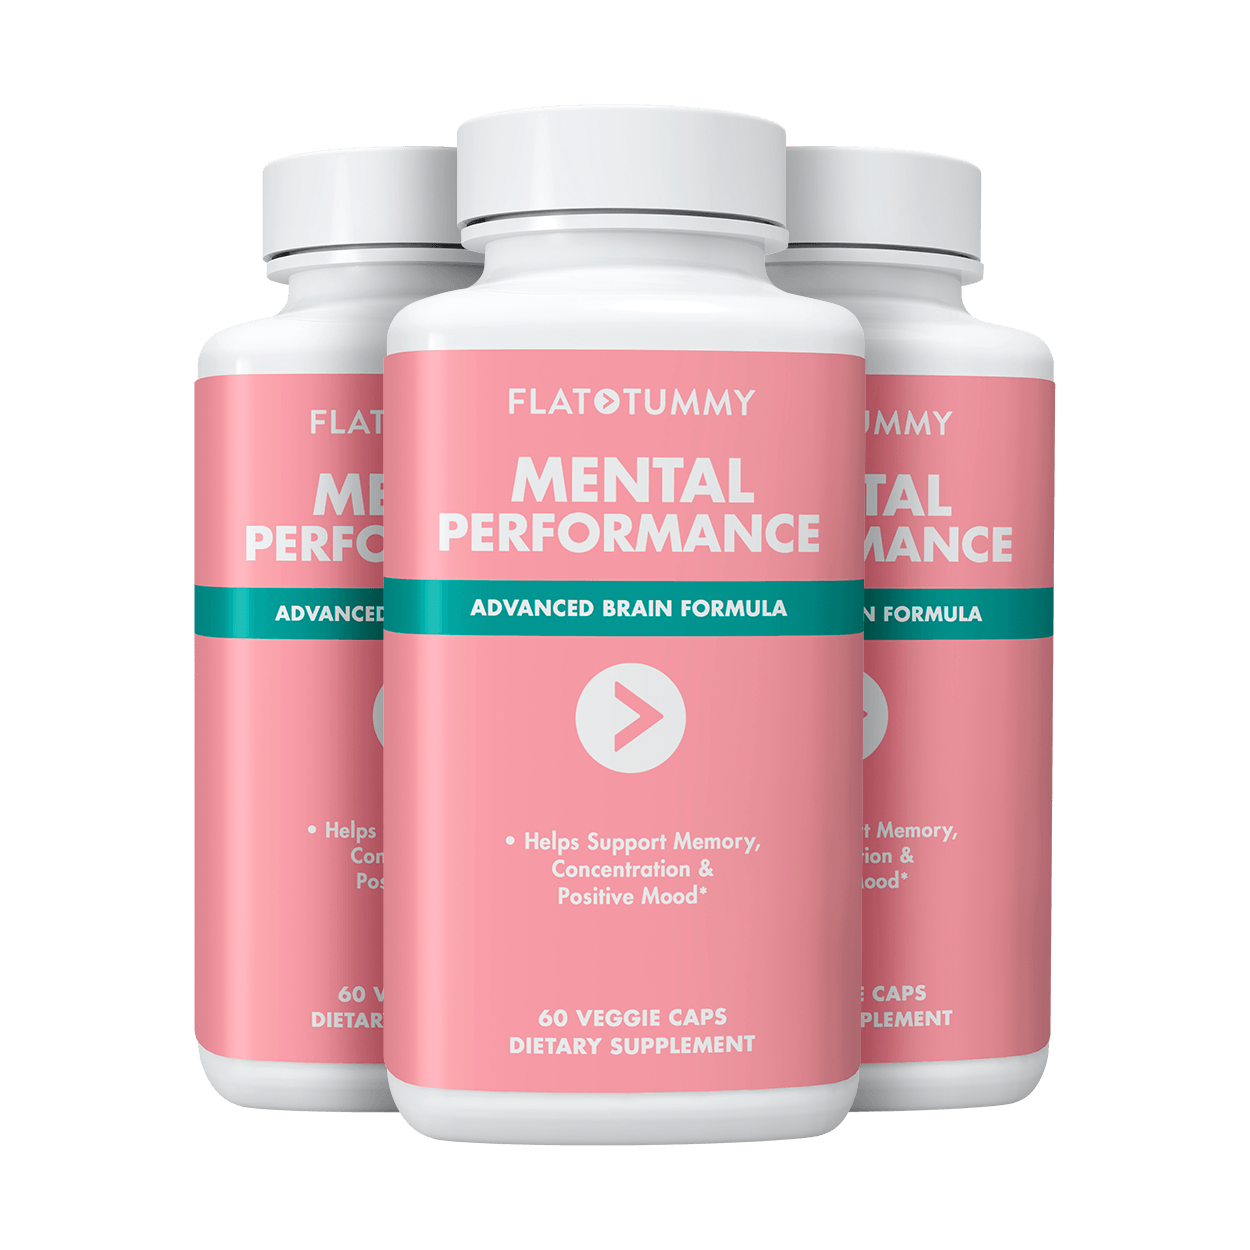 Flat Tummy Co Supplements 3 Bottles | ONLY $21.60 each Mental Performance